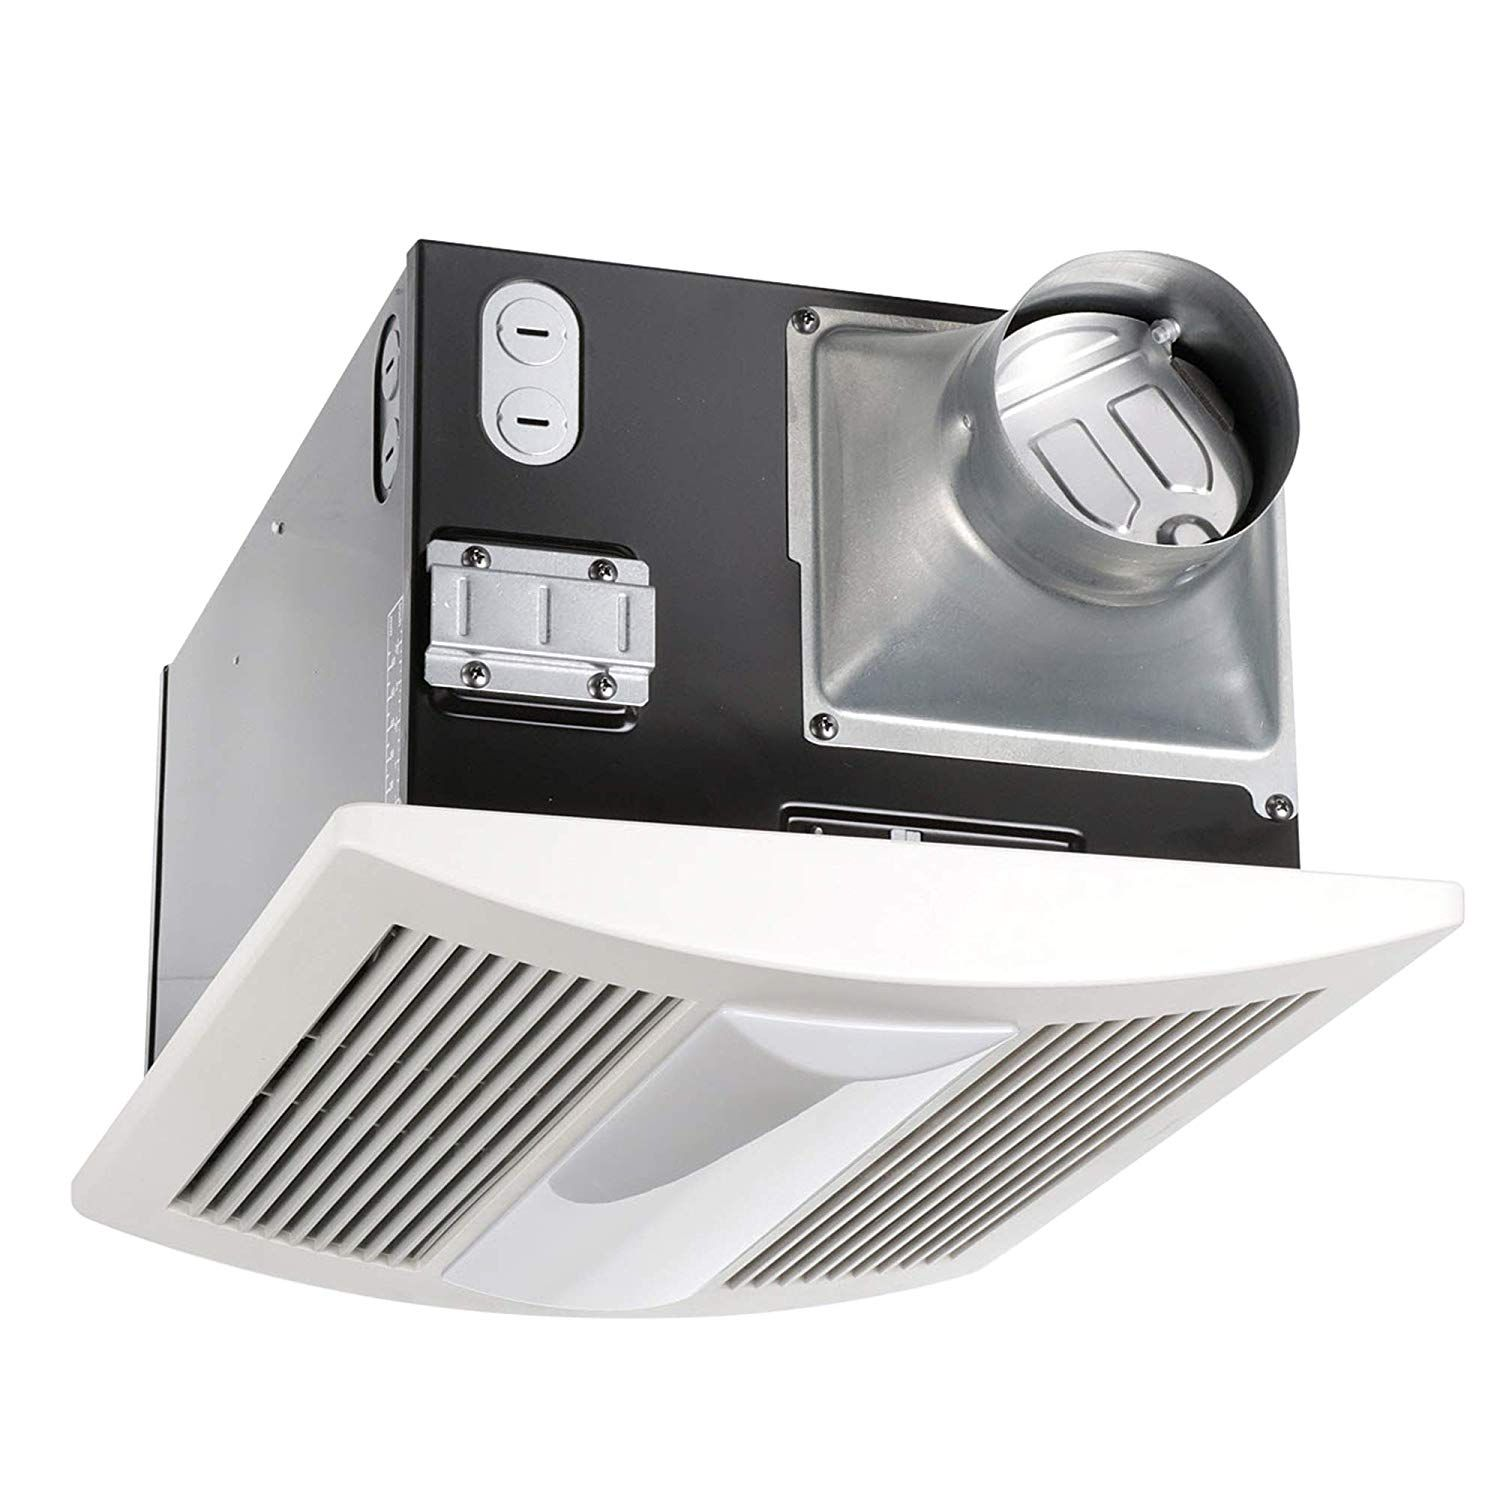 Top 10 Best Bathroom Heaters Bathroom Heater Bathroom Exhaust Fan Panasonic Bathroom Fan